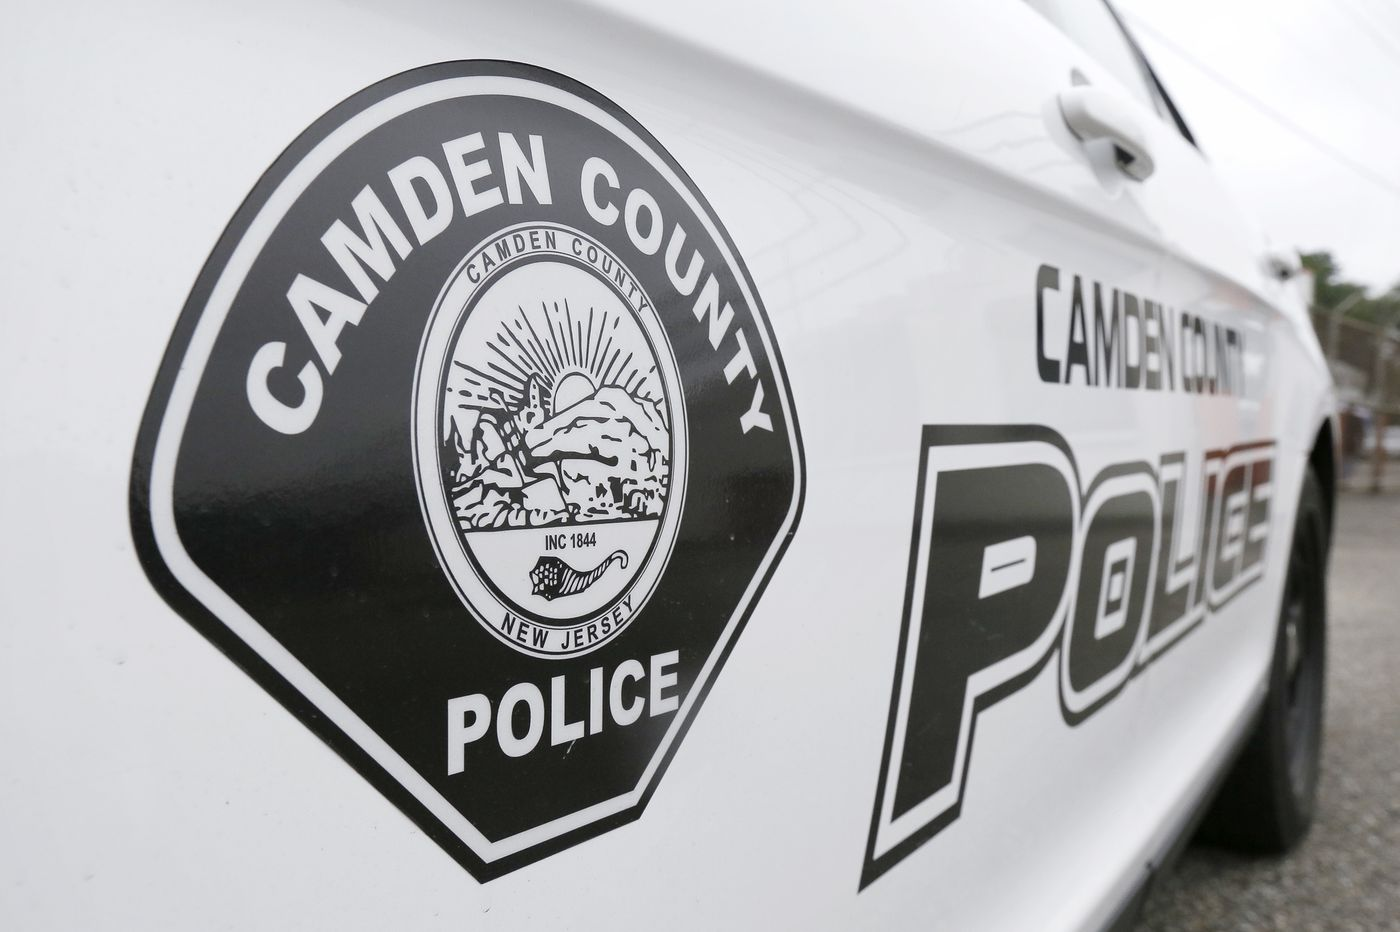 Camden County police officer charged with punching unarmed suspect